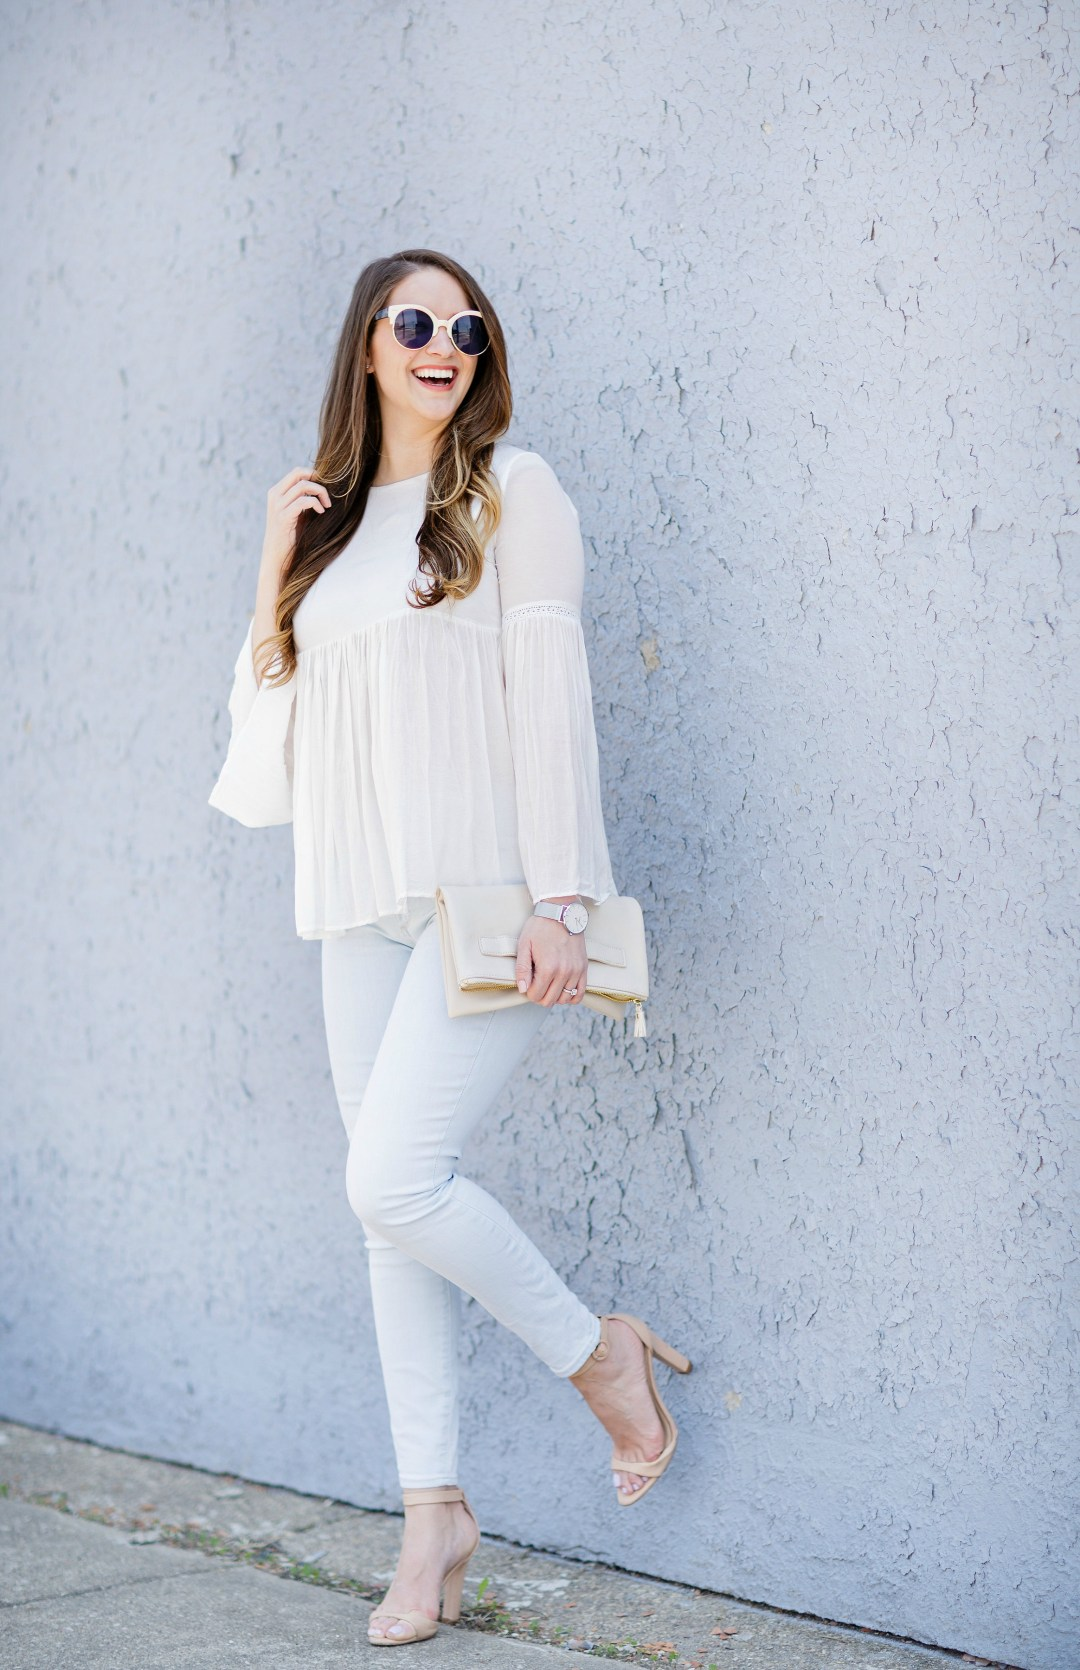 summer-whites-outfit-blouse-zara-gap-jeans-sunglasses-nude-sandals-rosecitystyleguide-canadian-blogger